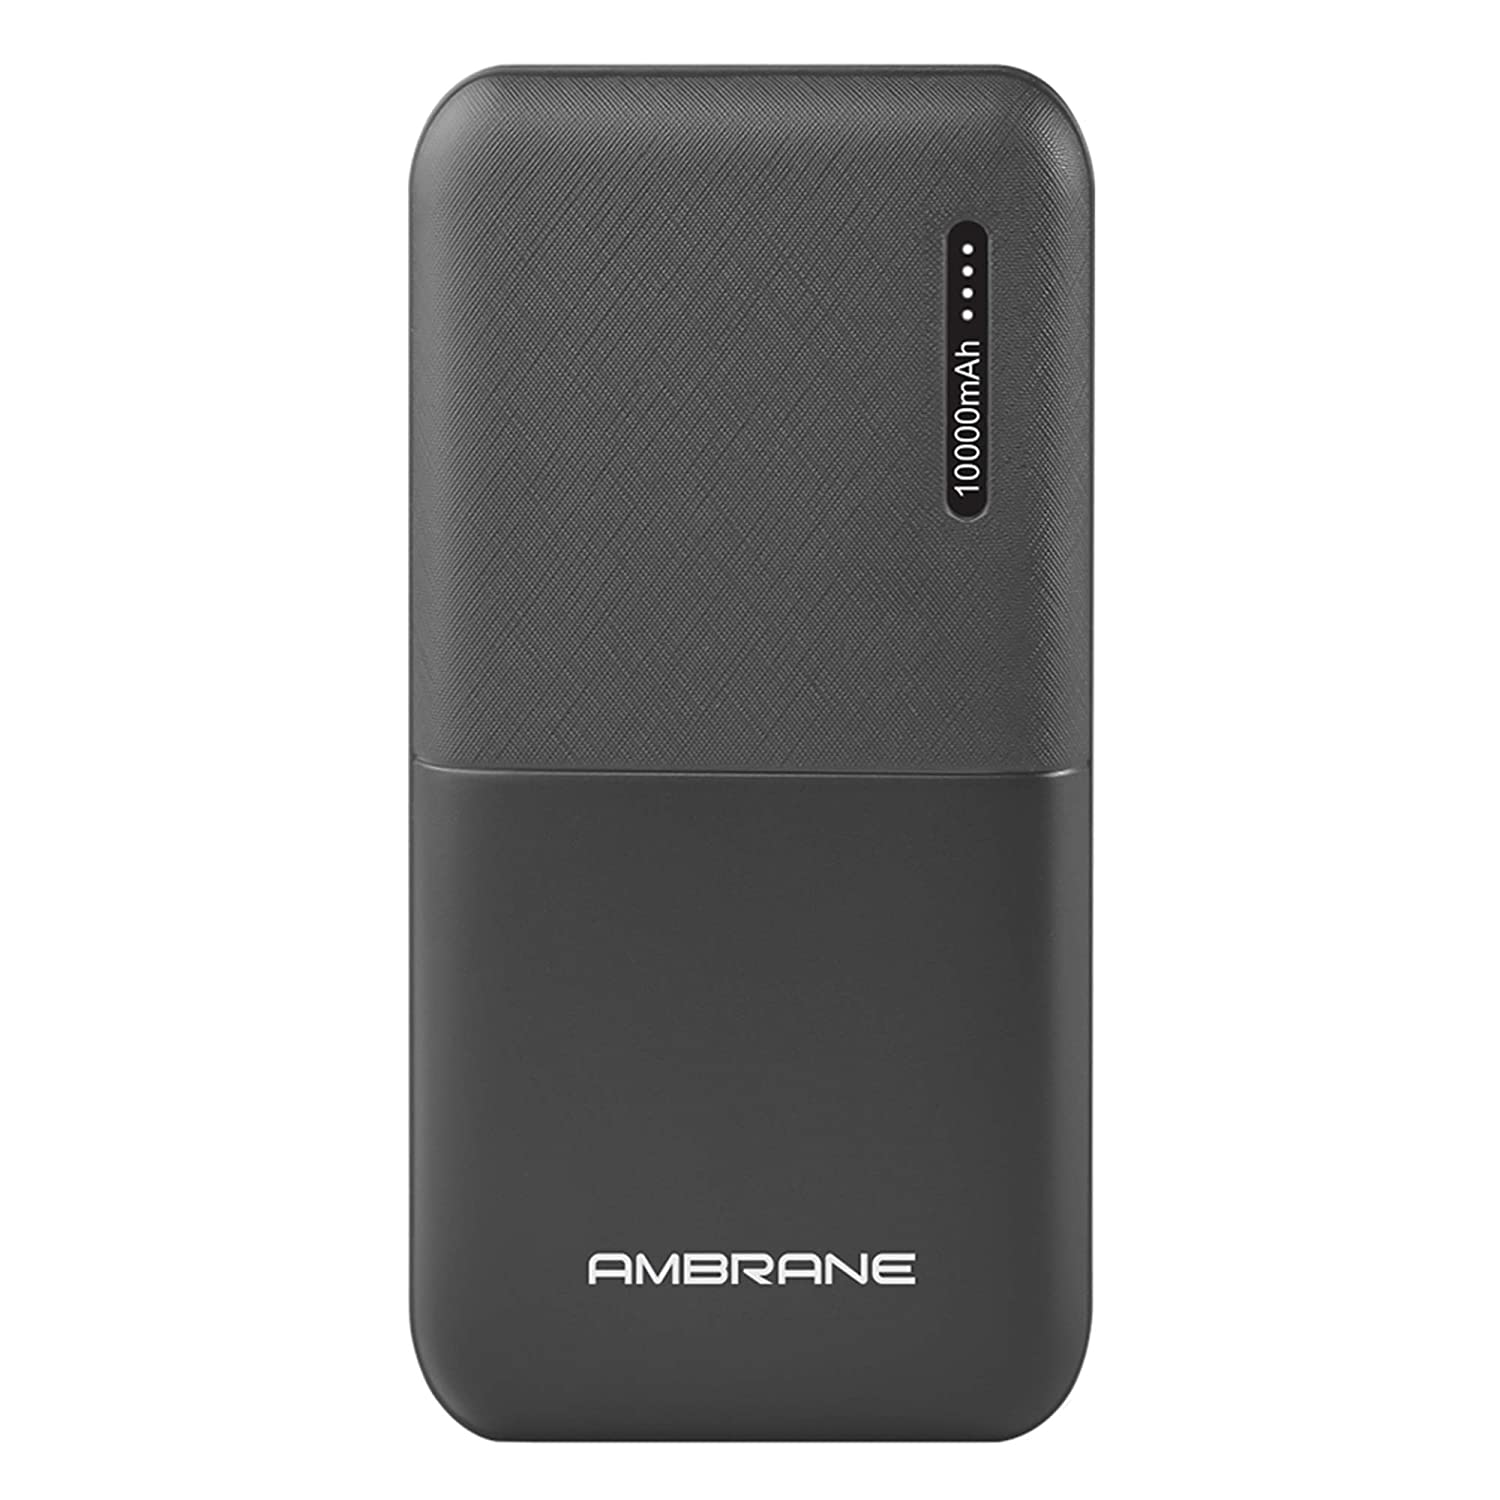 Ambrane 10000mAh Li-Polymer Powerbank with Compact Size & Fast Charging for Smartphones, Smart Watches, Neckbands & Other Devices (Capsule 10K, Black)